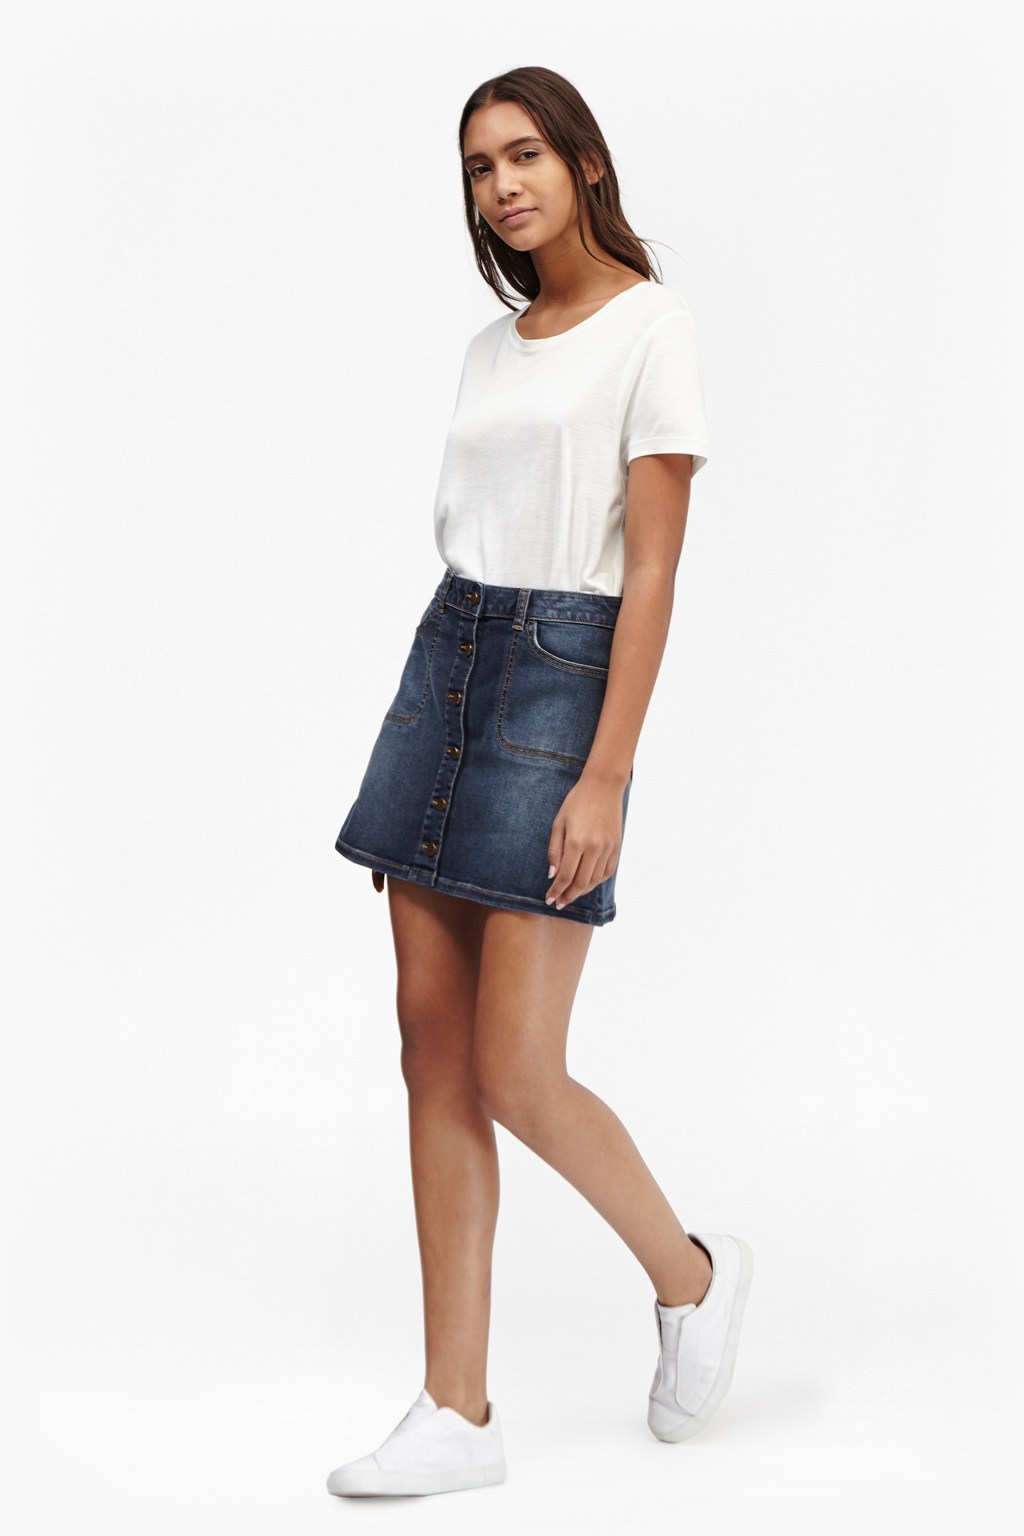 Tiffany Denim Mini Skirt Bleach - length: mini; pattern: plain; fit: loose/voluminous; waist: high rise; predominant colour: navy; occasions: casual, creative work; style: a-line; fibres: cotton - 100%; texture group: denim; pattern type: fabric; season: s/s 2016; wardrobe: basic